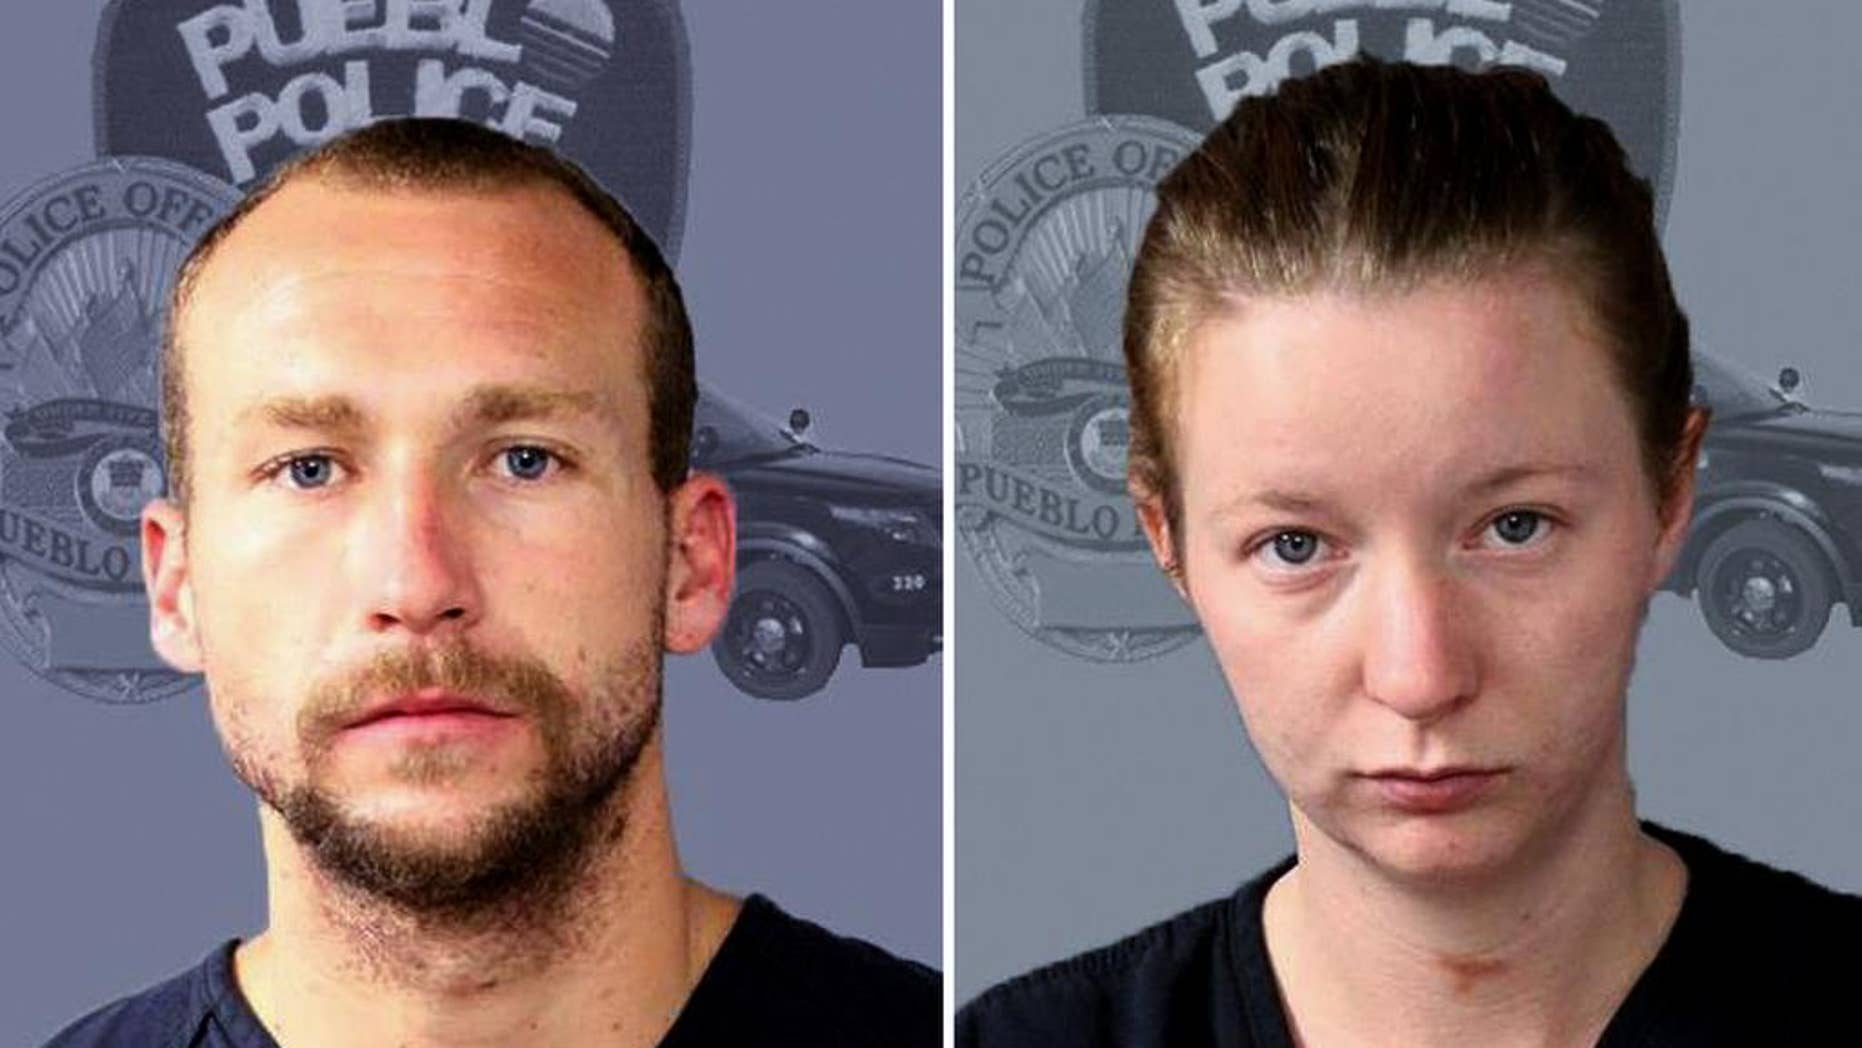 FILE - This undated booking file photo released by the Pueblo, Colo., Police Department shows Joshua Robertson and Brittney Humphrey. The California couple was charged with murder in the shooting death of a relative and the kidnapping of her young children. The Los Angeles County District Attorney's Office announced the charges Thursday, Sept. 22, 2016, against Robertson and Humphrey. (Pueblo Police Department via AP, File)